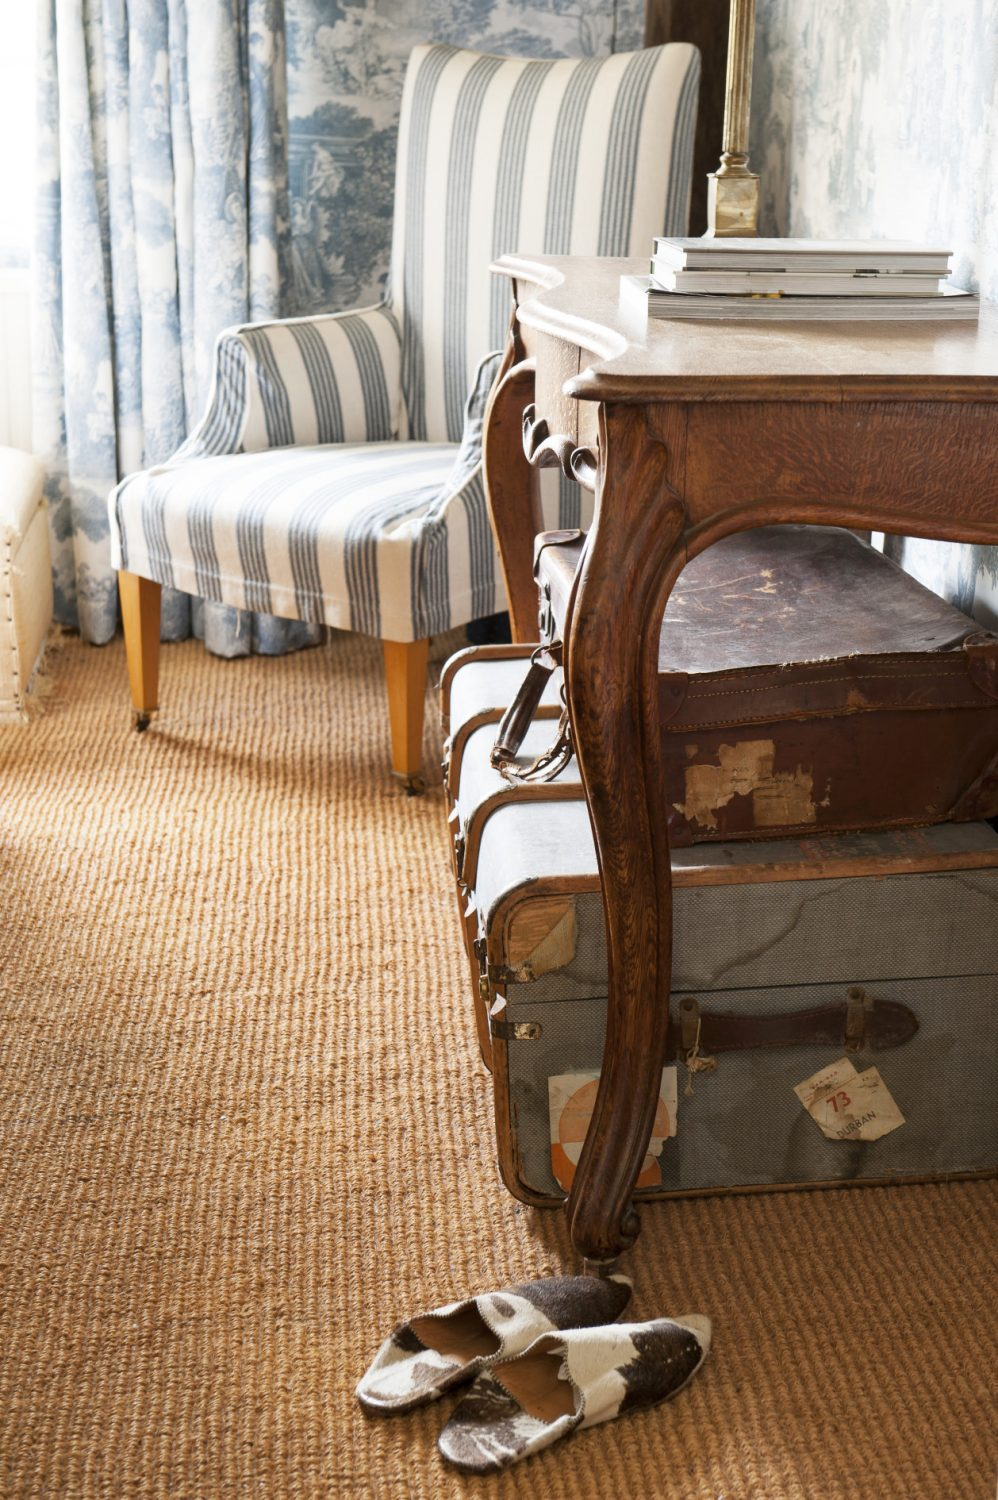 Well-travelled antique suitcases